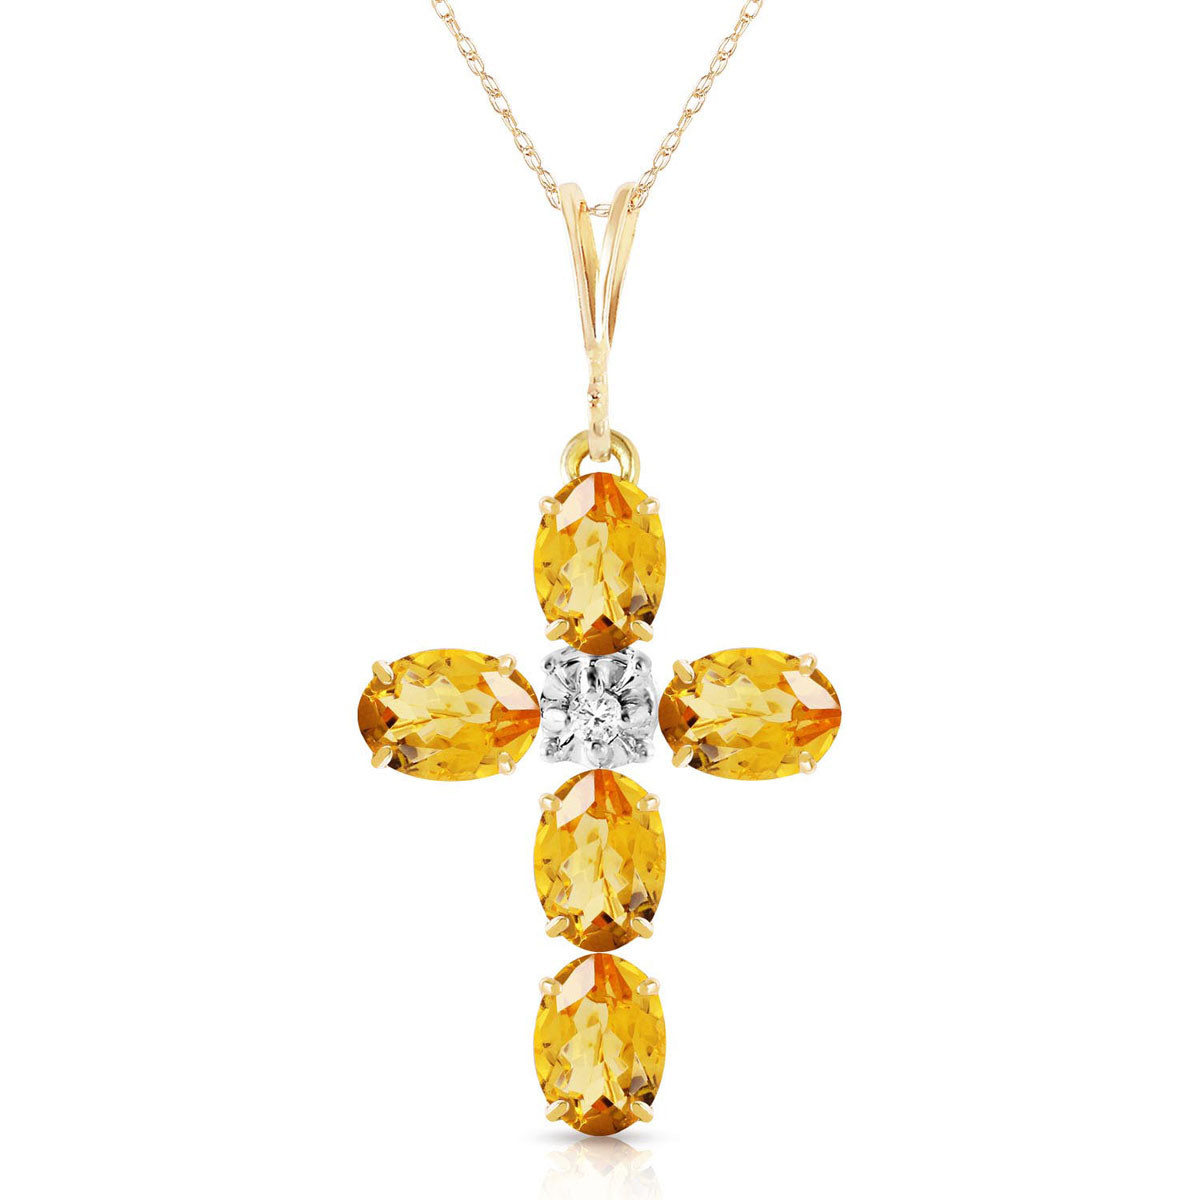 Citrine & Diamond Rio Cross Pendant Necklace in 9ct Gold